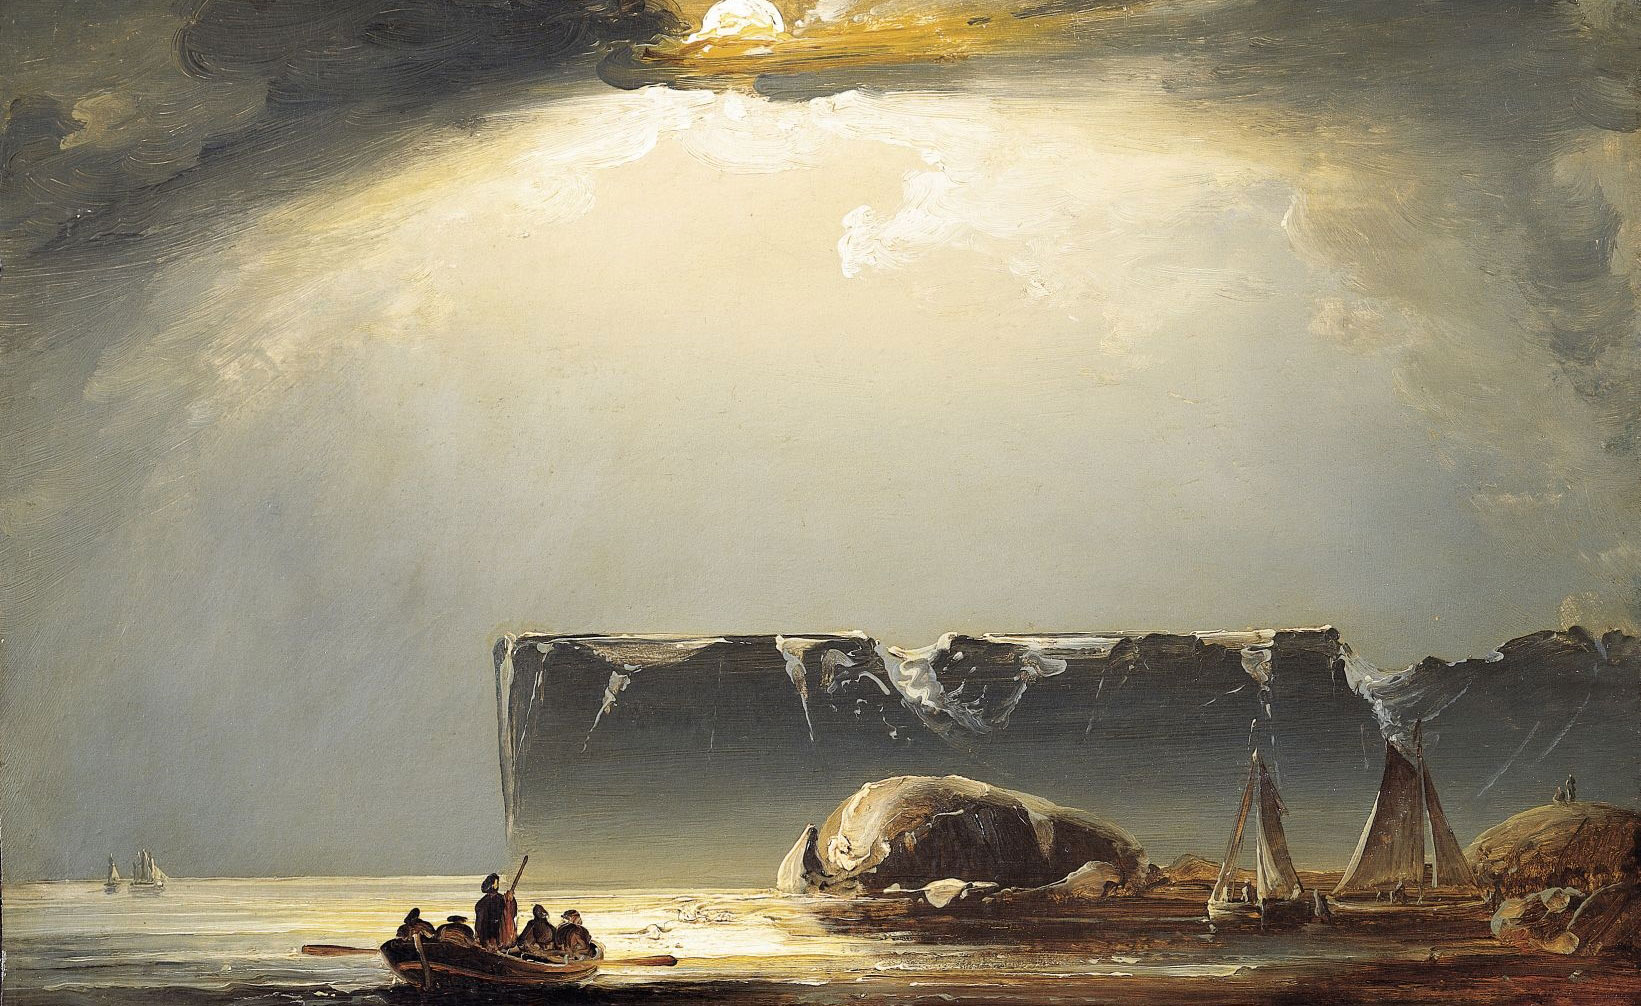 Peder Balke At The National Gallery in addition Why British Pcs Are Still Best besides Barracuda Moto also What Makes Kuber es Cluster additionally 2. on setup styles